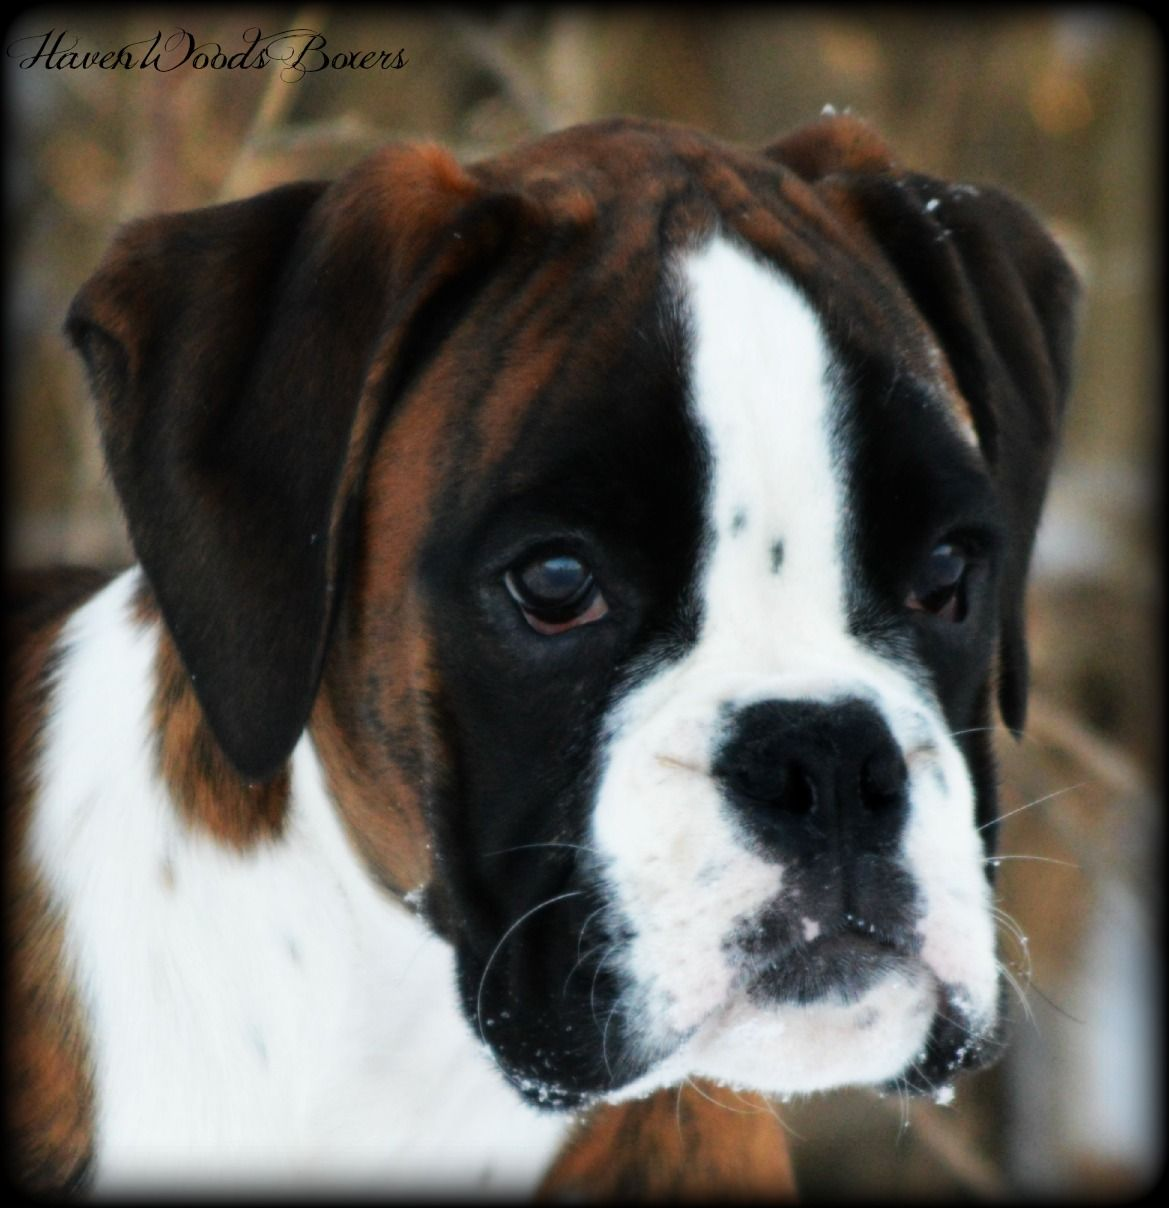 Havenwoods Boxers Top Quality Akc German And American Tommy Thayer Boxer Puppy For Sale Euro Puppy Kal In 2020 Boxer Puppies Brindle Boxer Puppies Boxer Dogs Brindle